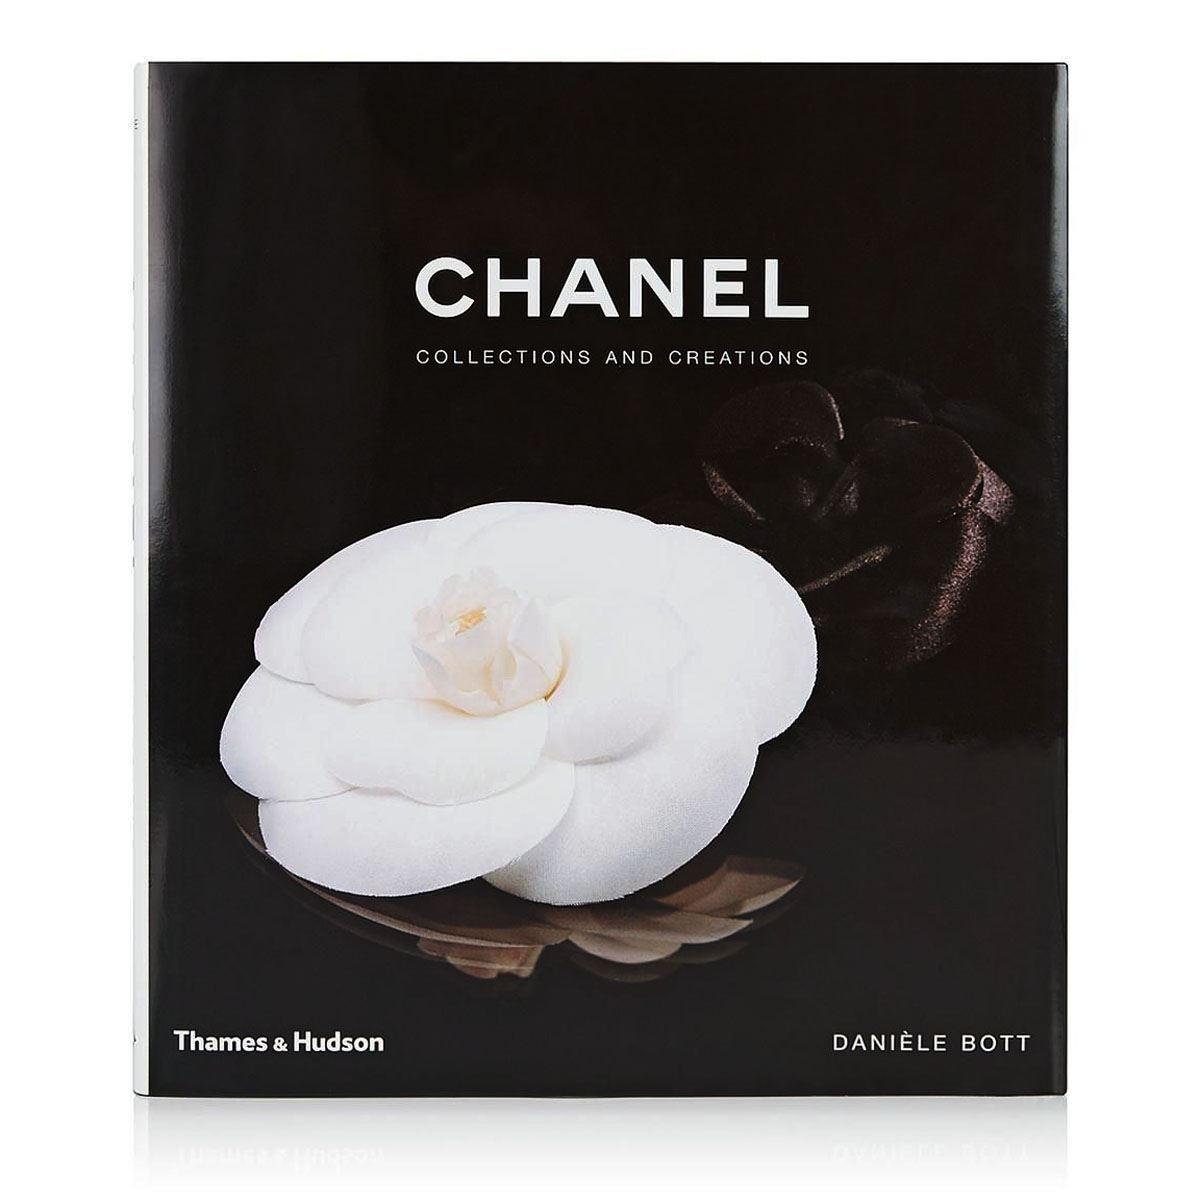 Chanel: collections and creation Libro - Sanborns